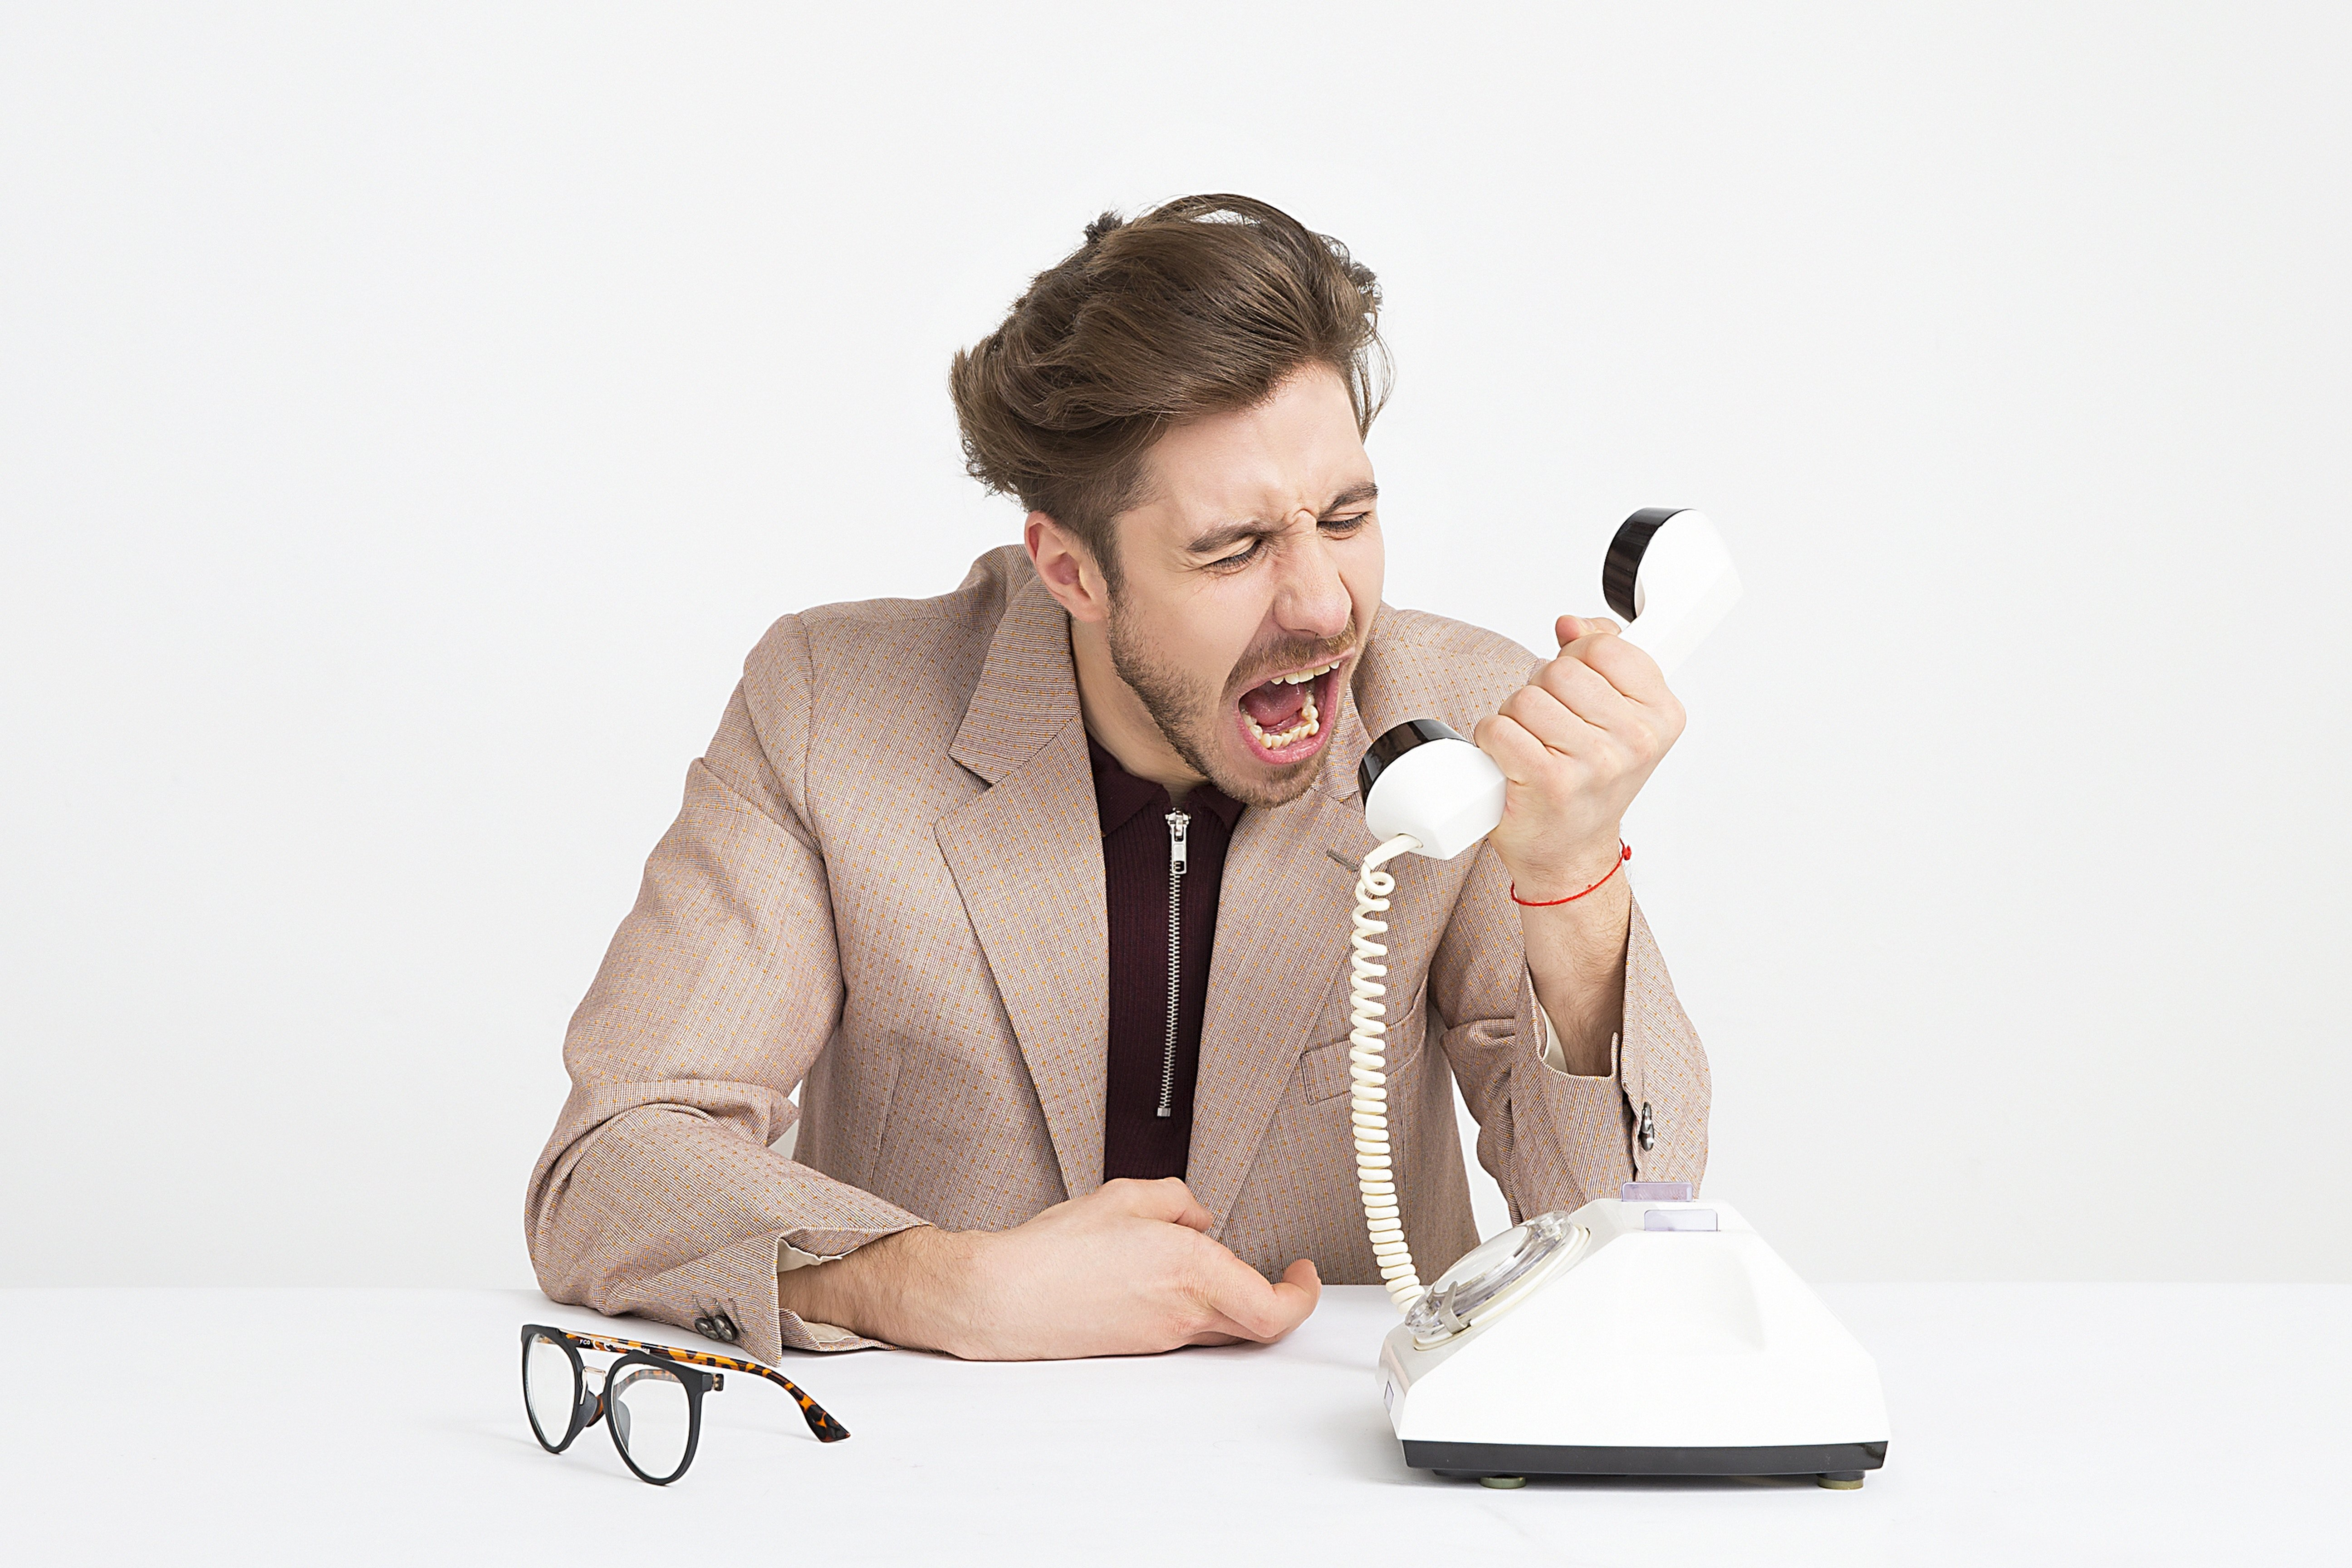 A man is upset by a surprise medical bill and is yelling at the phone